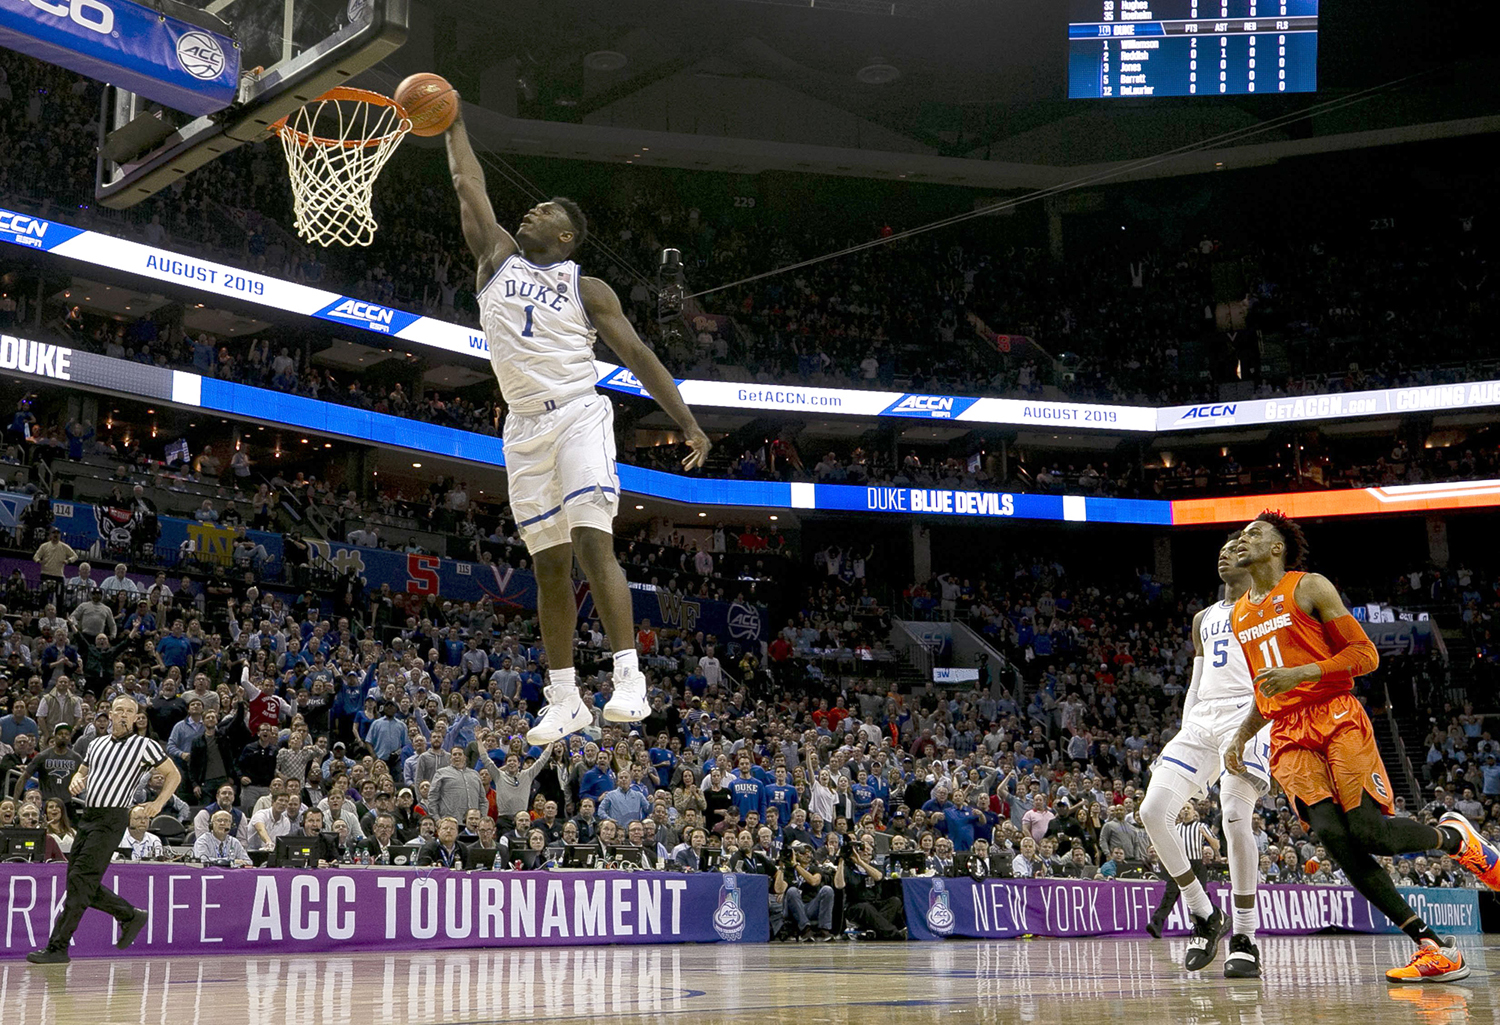 Duke's Zion Williamson (1) glides to the basket for a dunk in the opening minutes of play against Syracuse in the quarterfinals of the ACC Tournament at the Spectrum Center in Charlotte, North Carolina, on March 14.